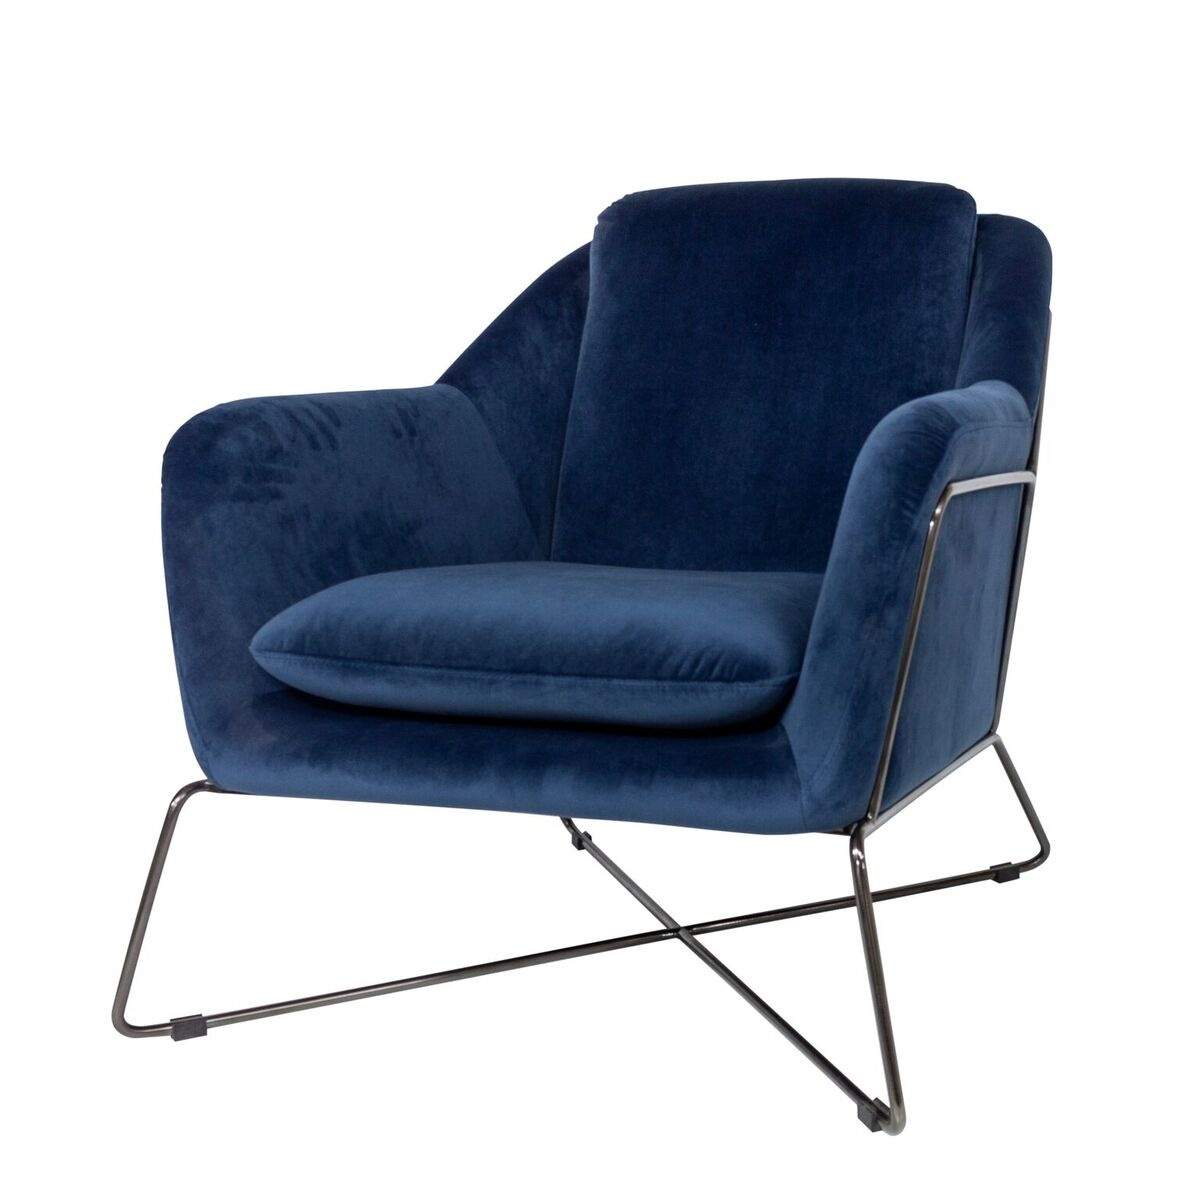 Enjoyable Gin Lounge Chair Blue Creativecarmelina Interior Chair Design Creativecarmelinacom